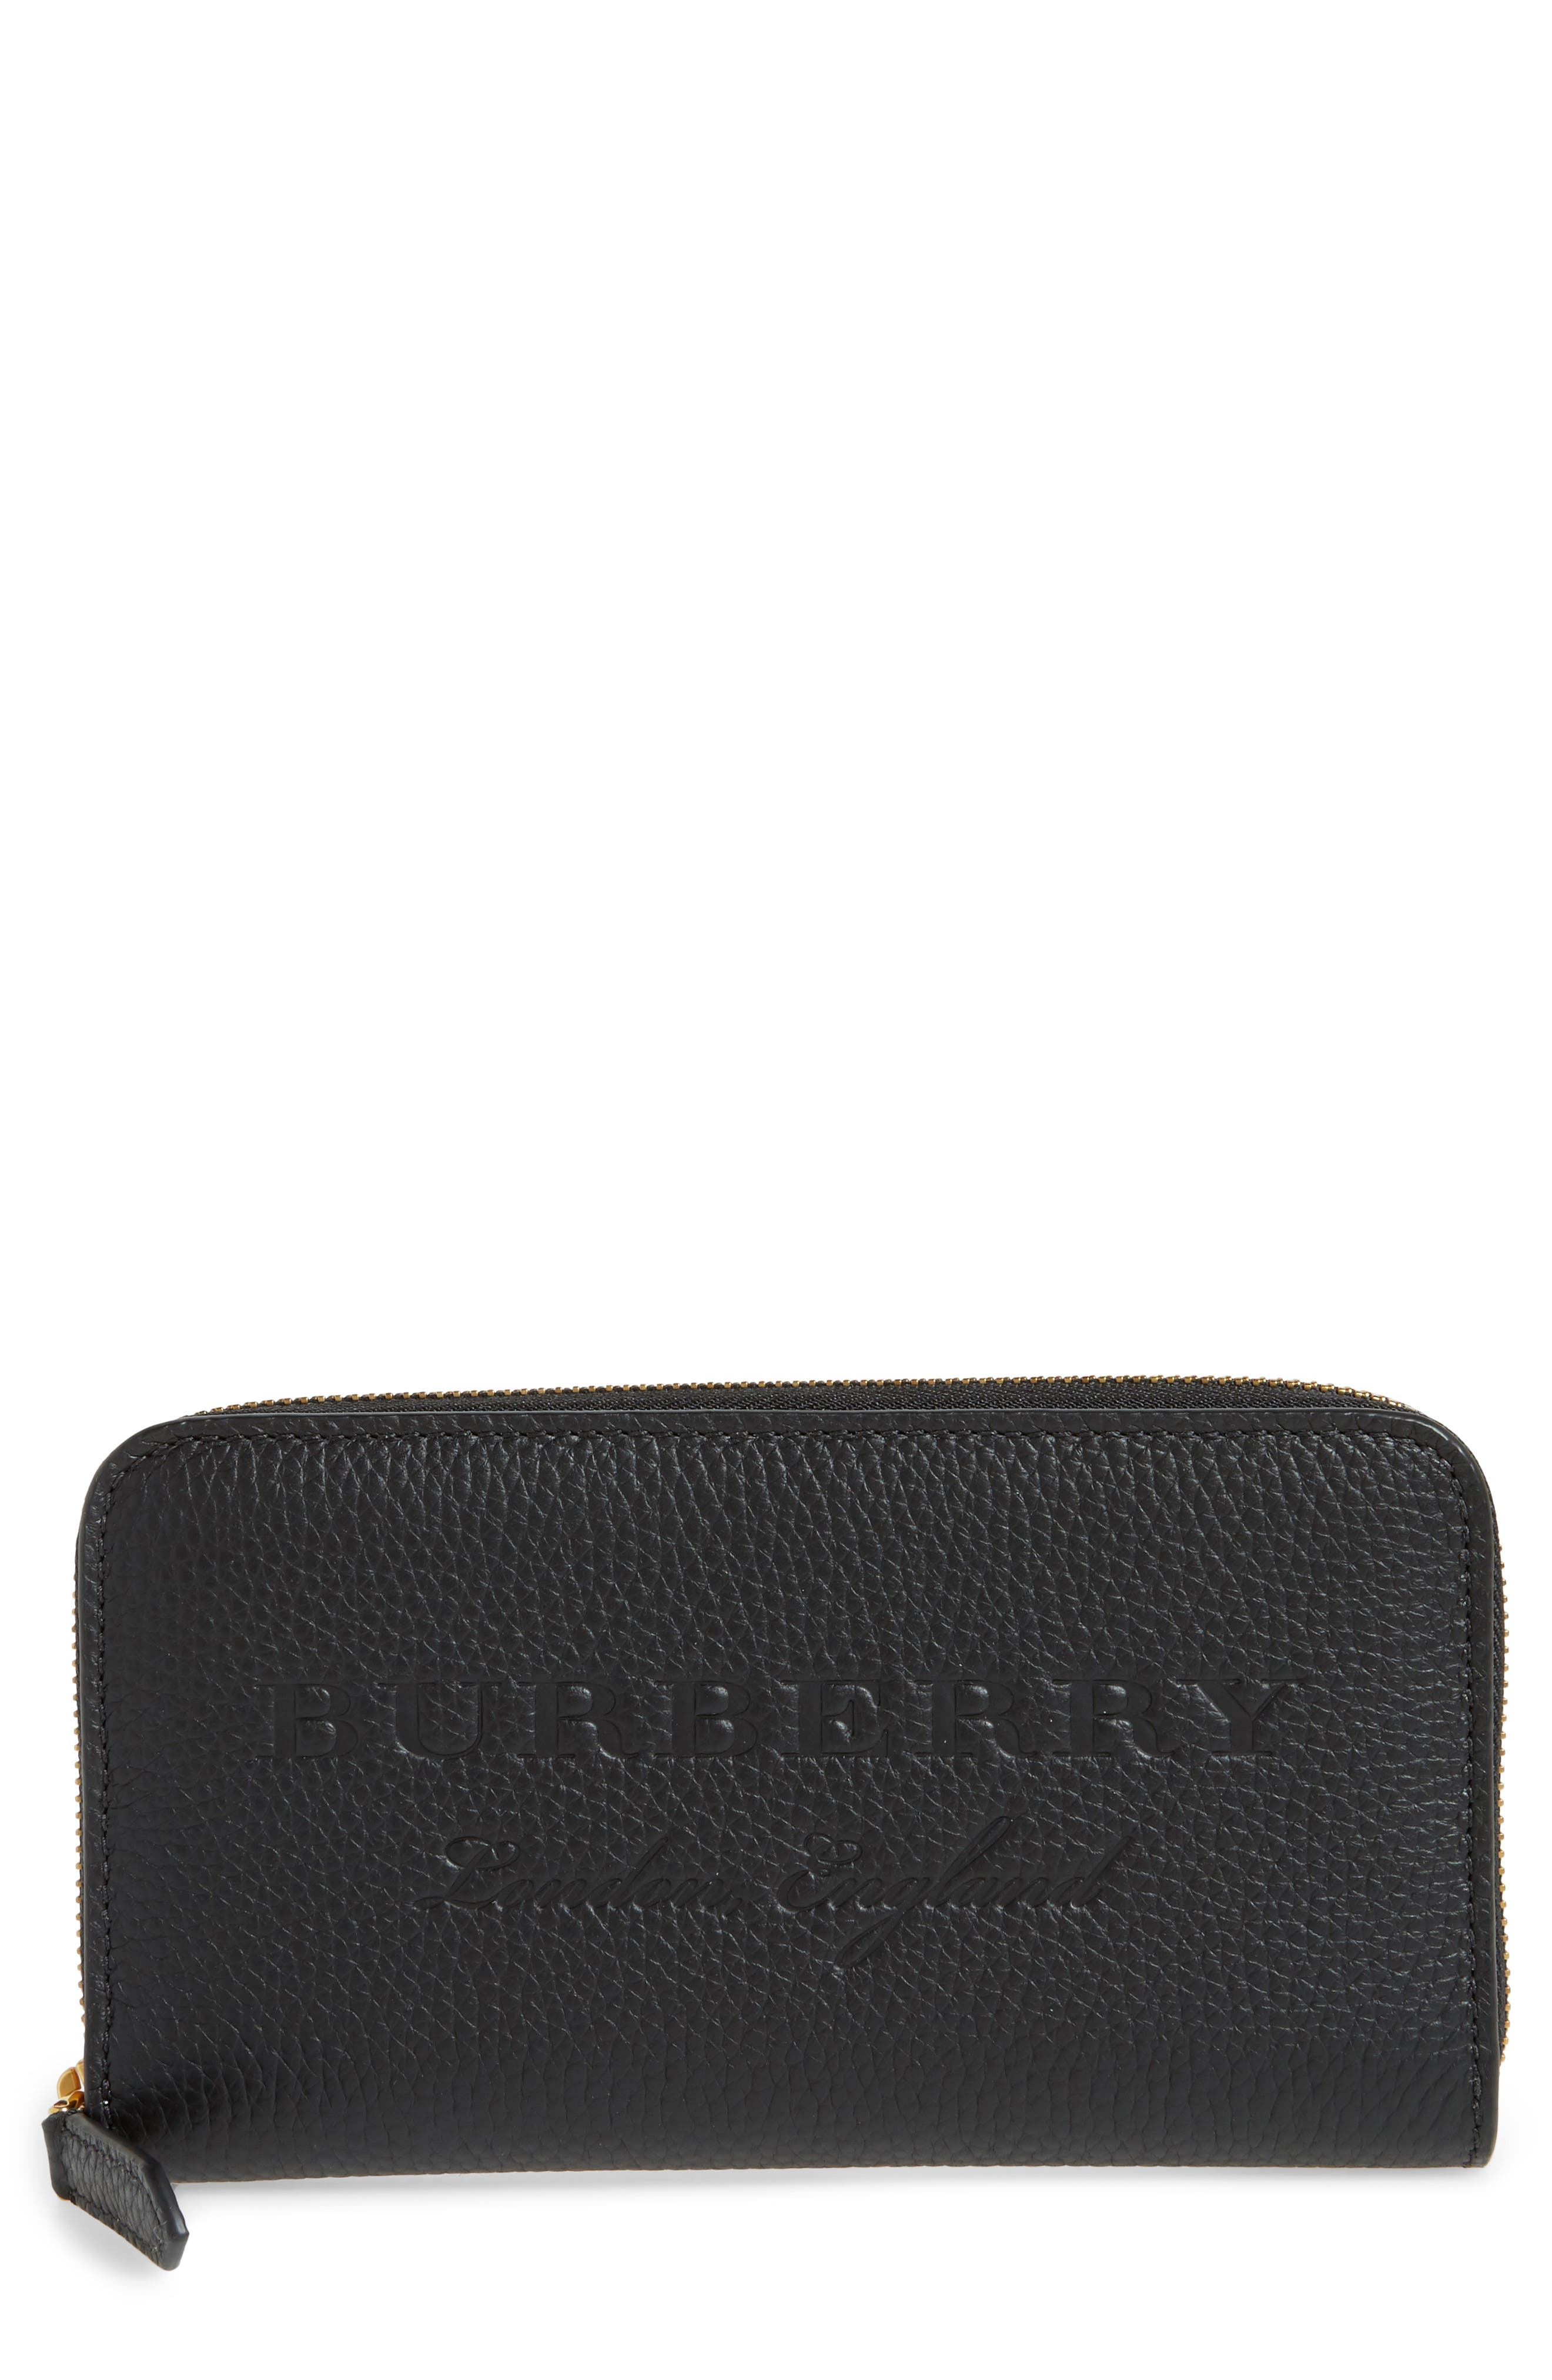 Leather Zip-Around Wallet,                         Main,                         color, Black